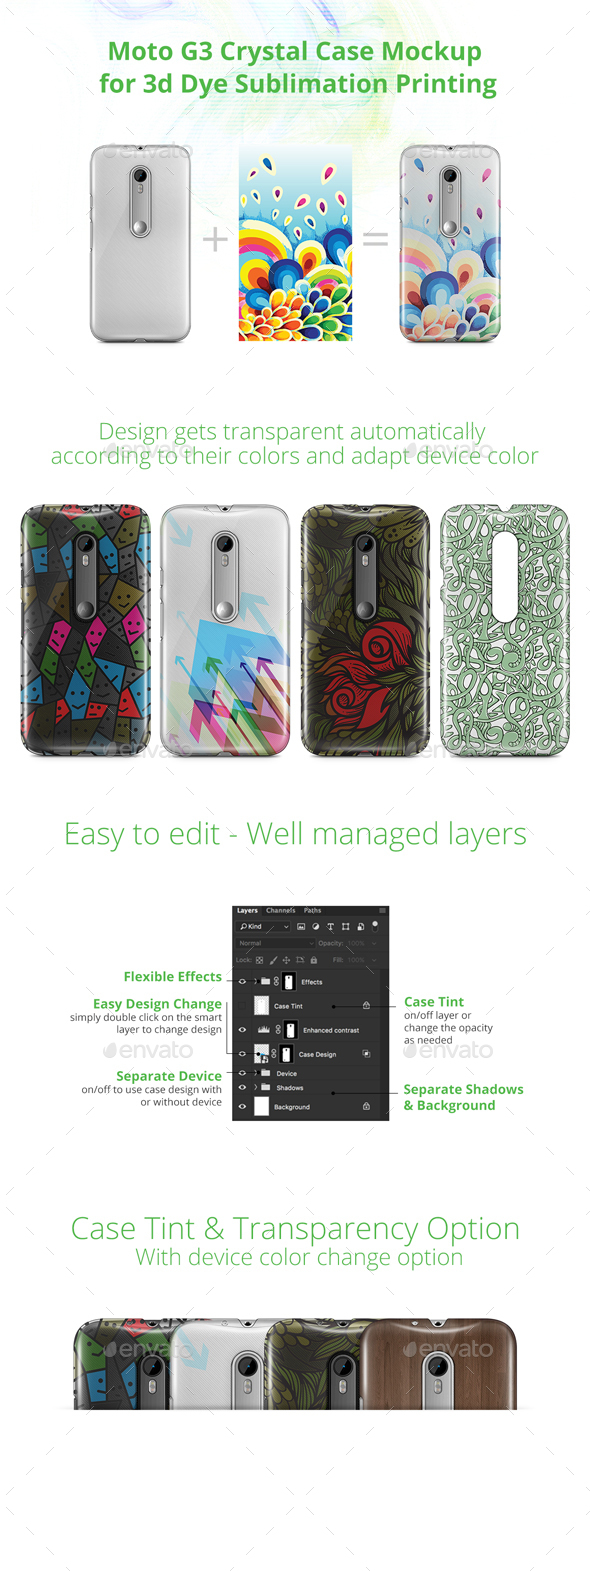 Moto G3 Crystal Case Mockup for 3d Dye Sublimation Printing- Back View - Mobile Displays